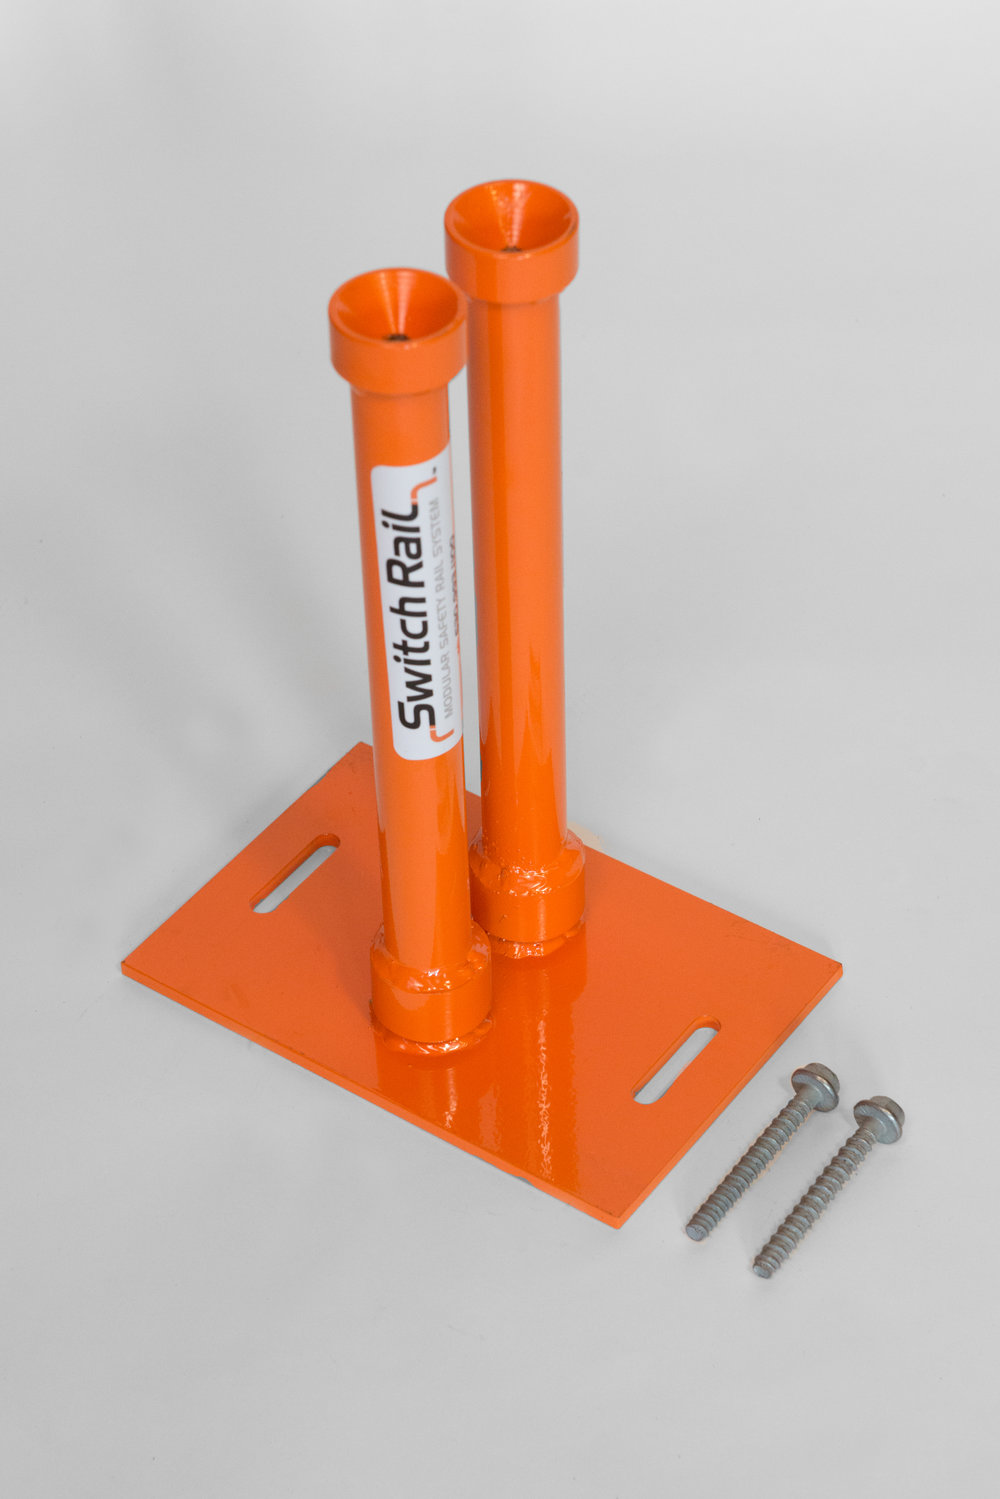 DSBP2 - Double Stem Base Plate